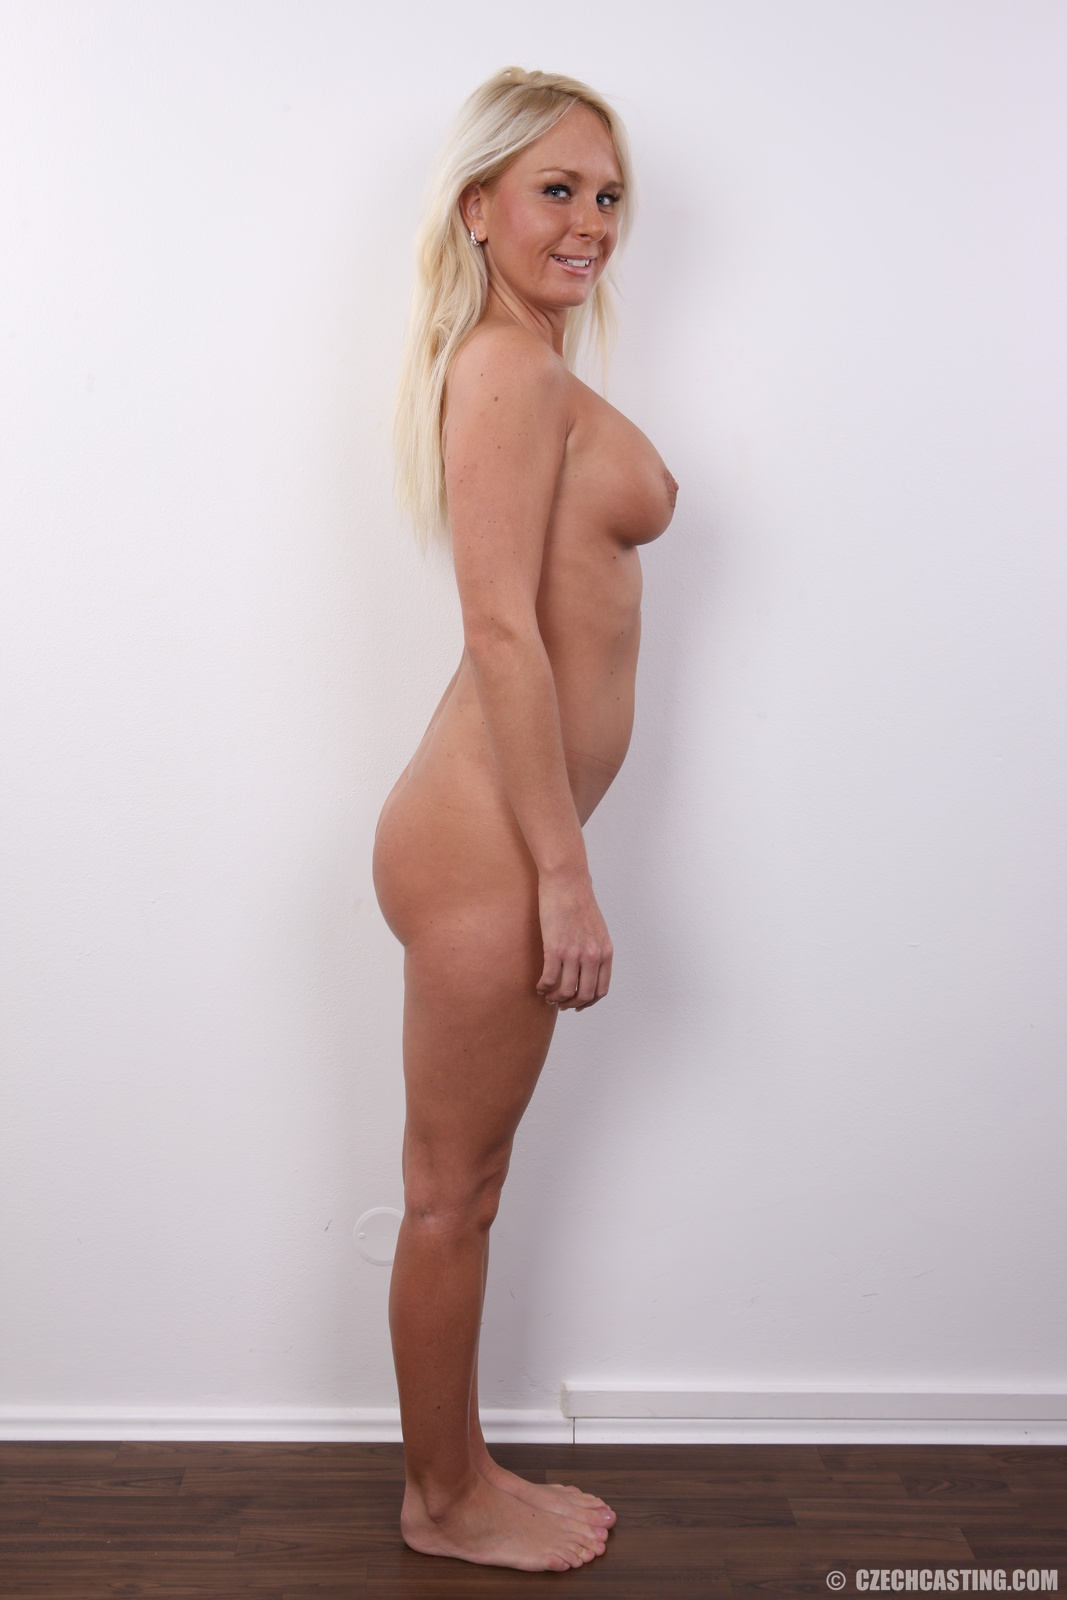 http://cdn.czechcasting.co/wp-content/uploads/2013/12/19_9641.jpg